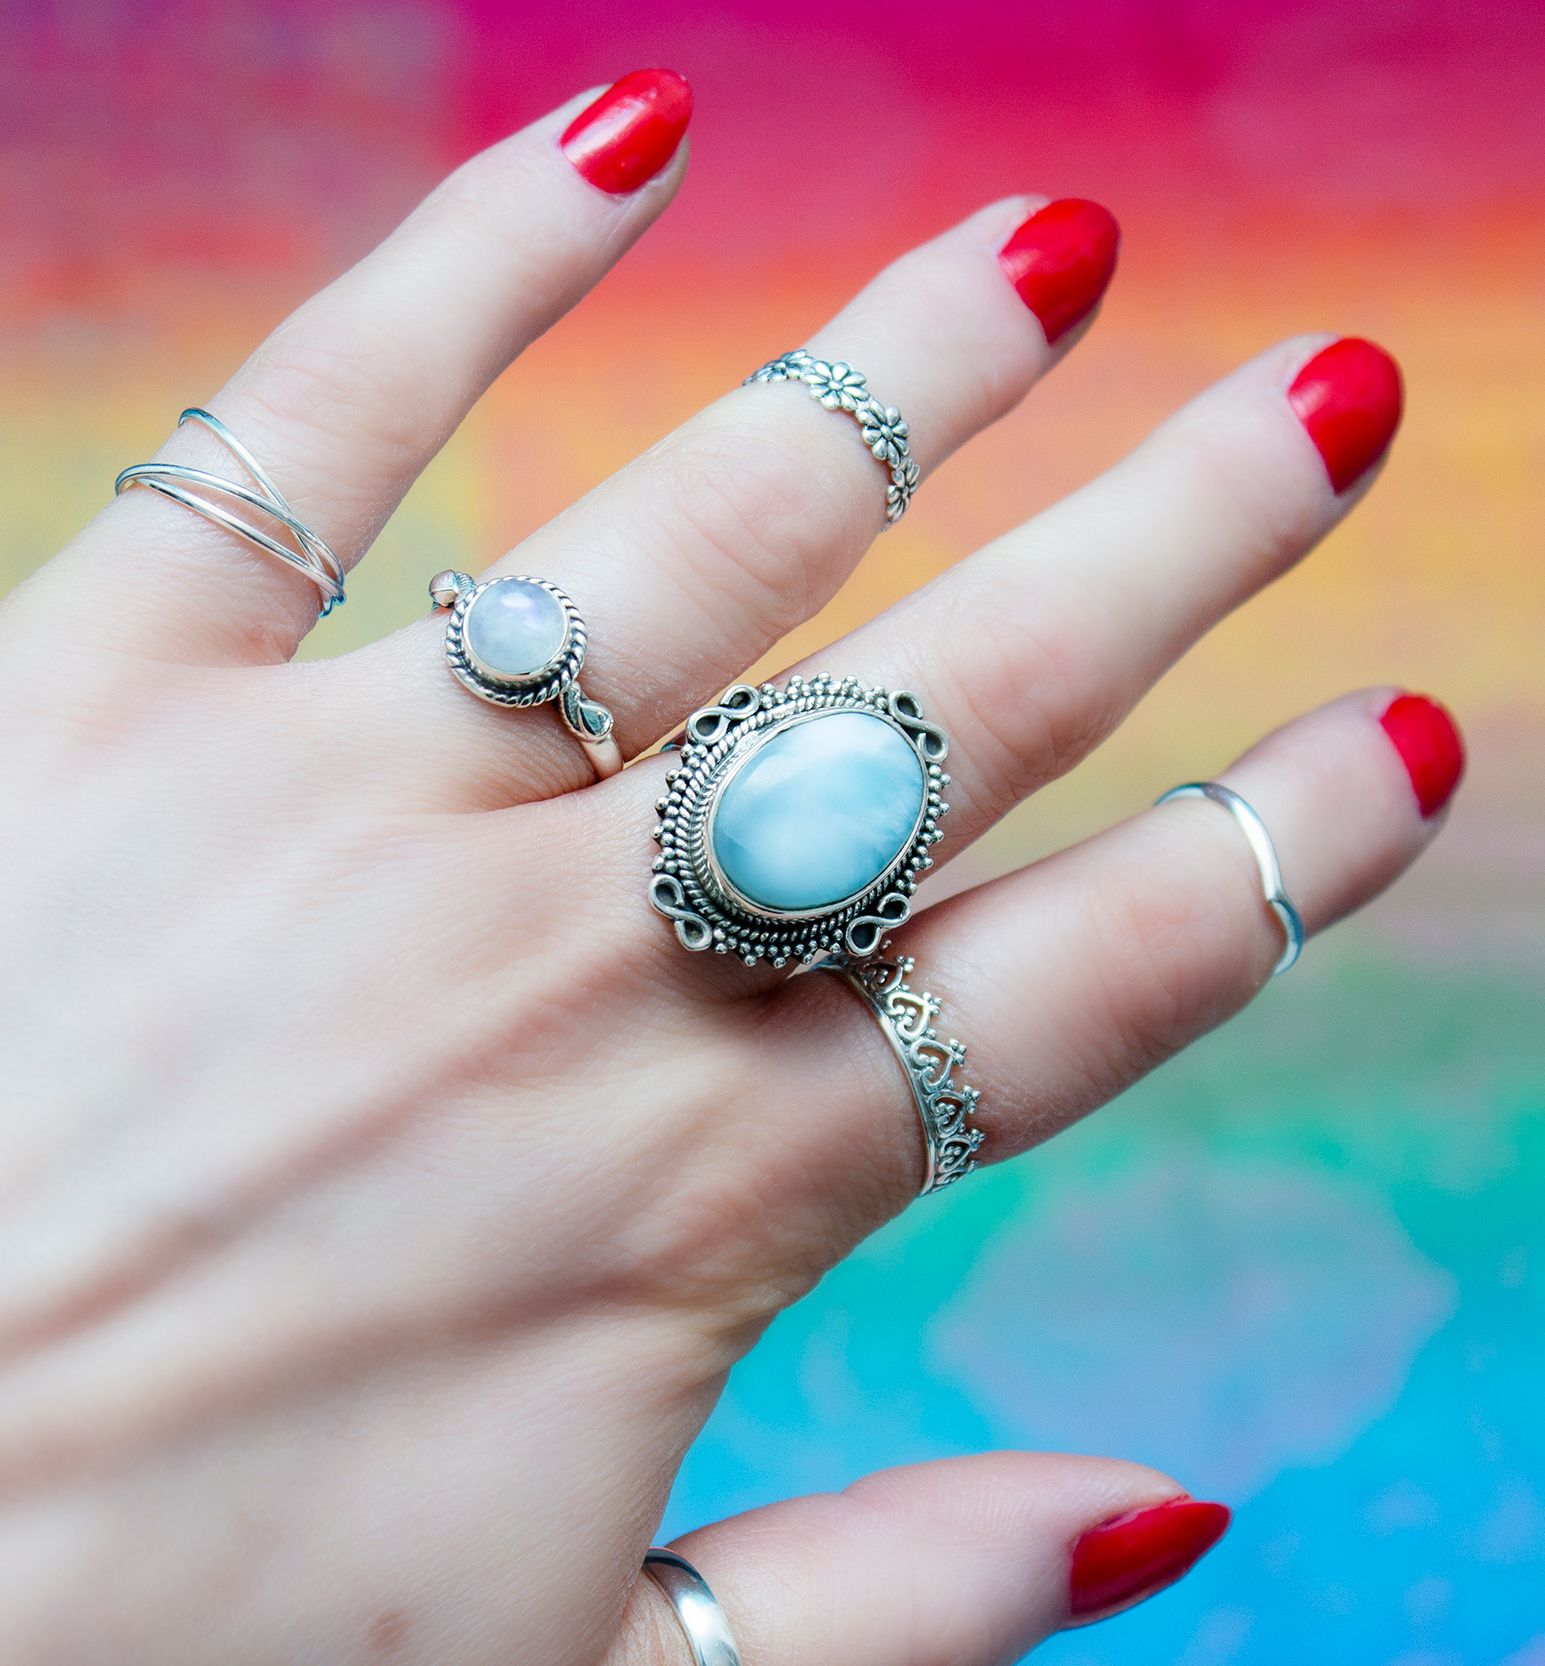 Colours of the World from www.boholake.co.uk // Boho Lake // Larimar // hippie // jewelry // sterling silver // bohemian jewellery // gypsy jewels // boho chic // midi ring // rainbow moonstone